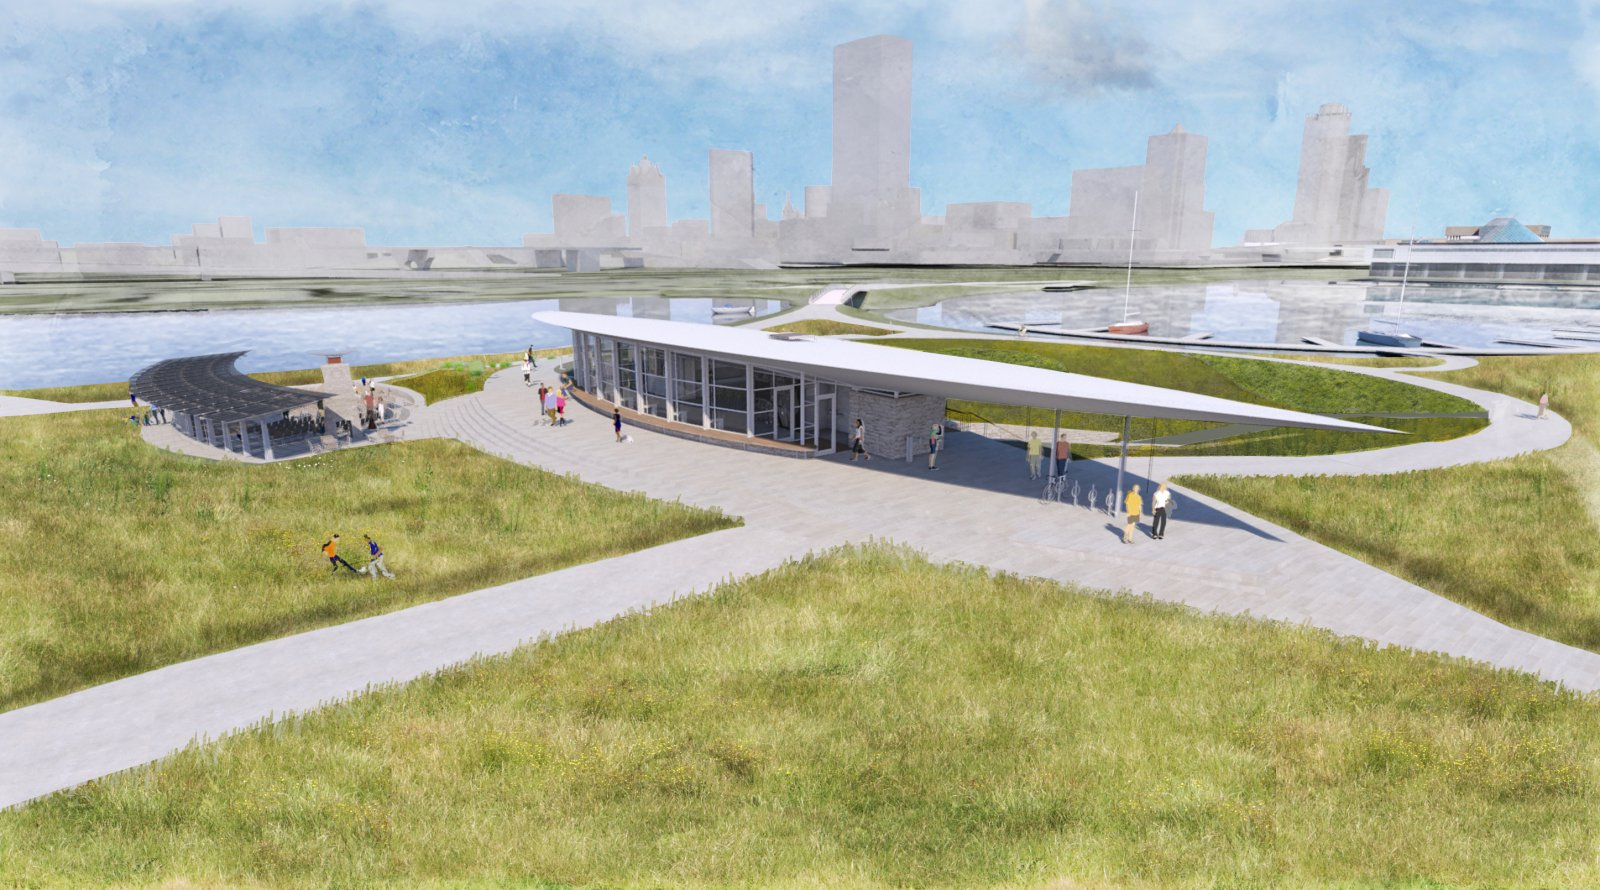 Visitor and Education Center on Lakeshore State Park Rendering